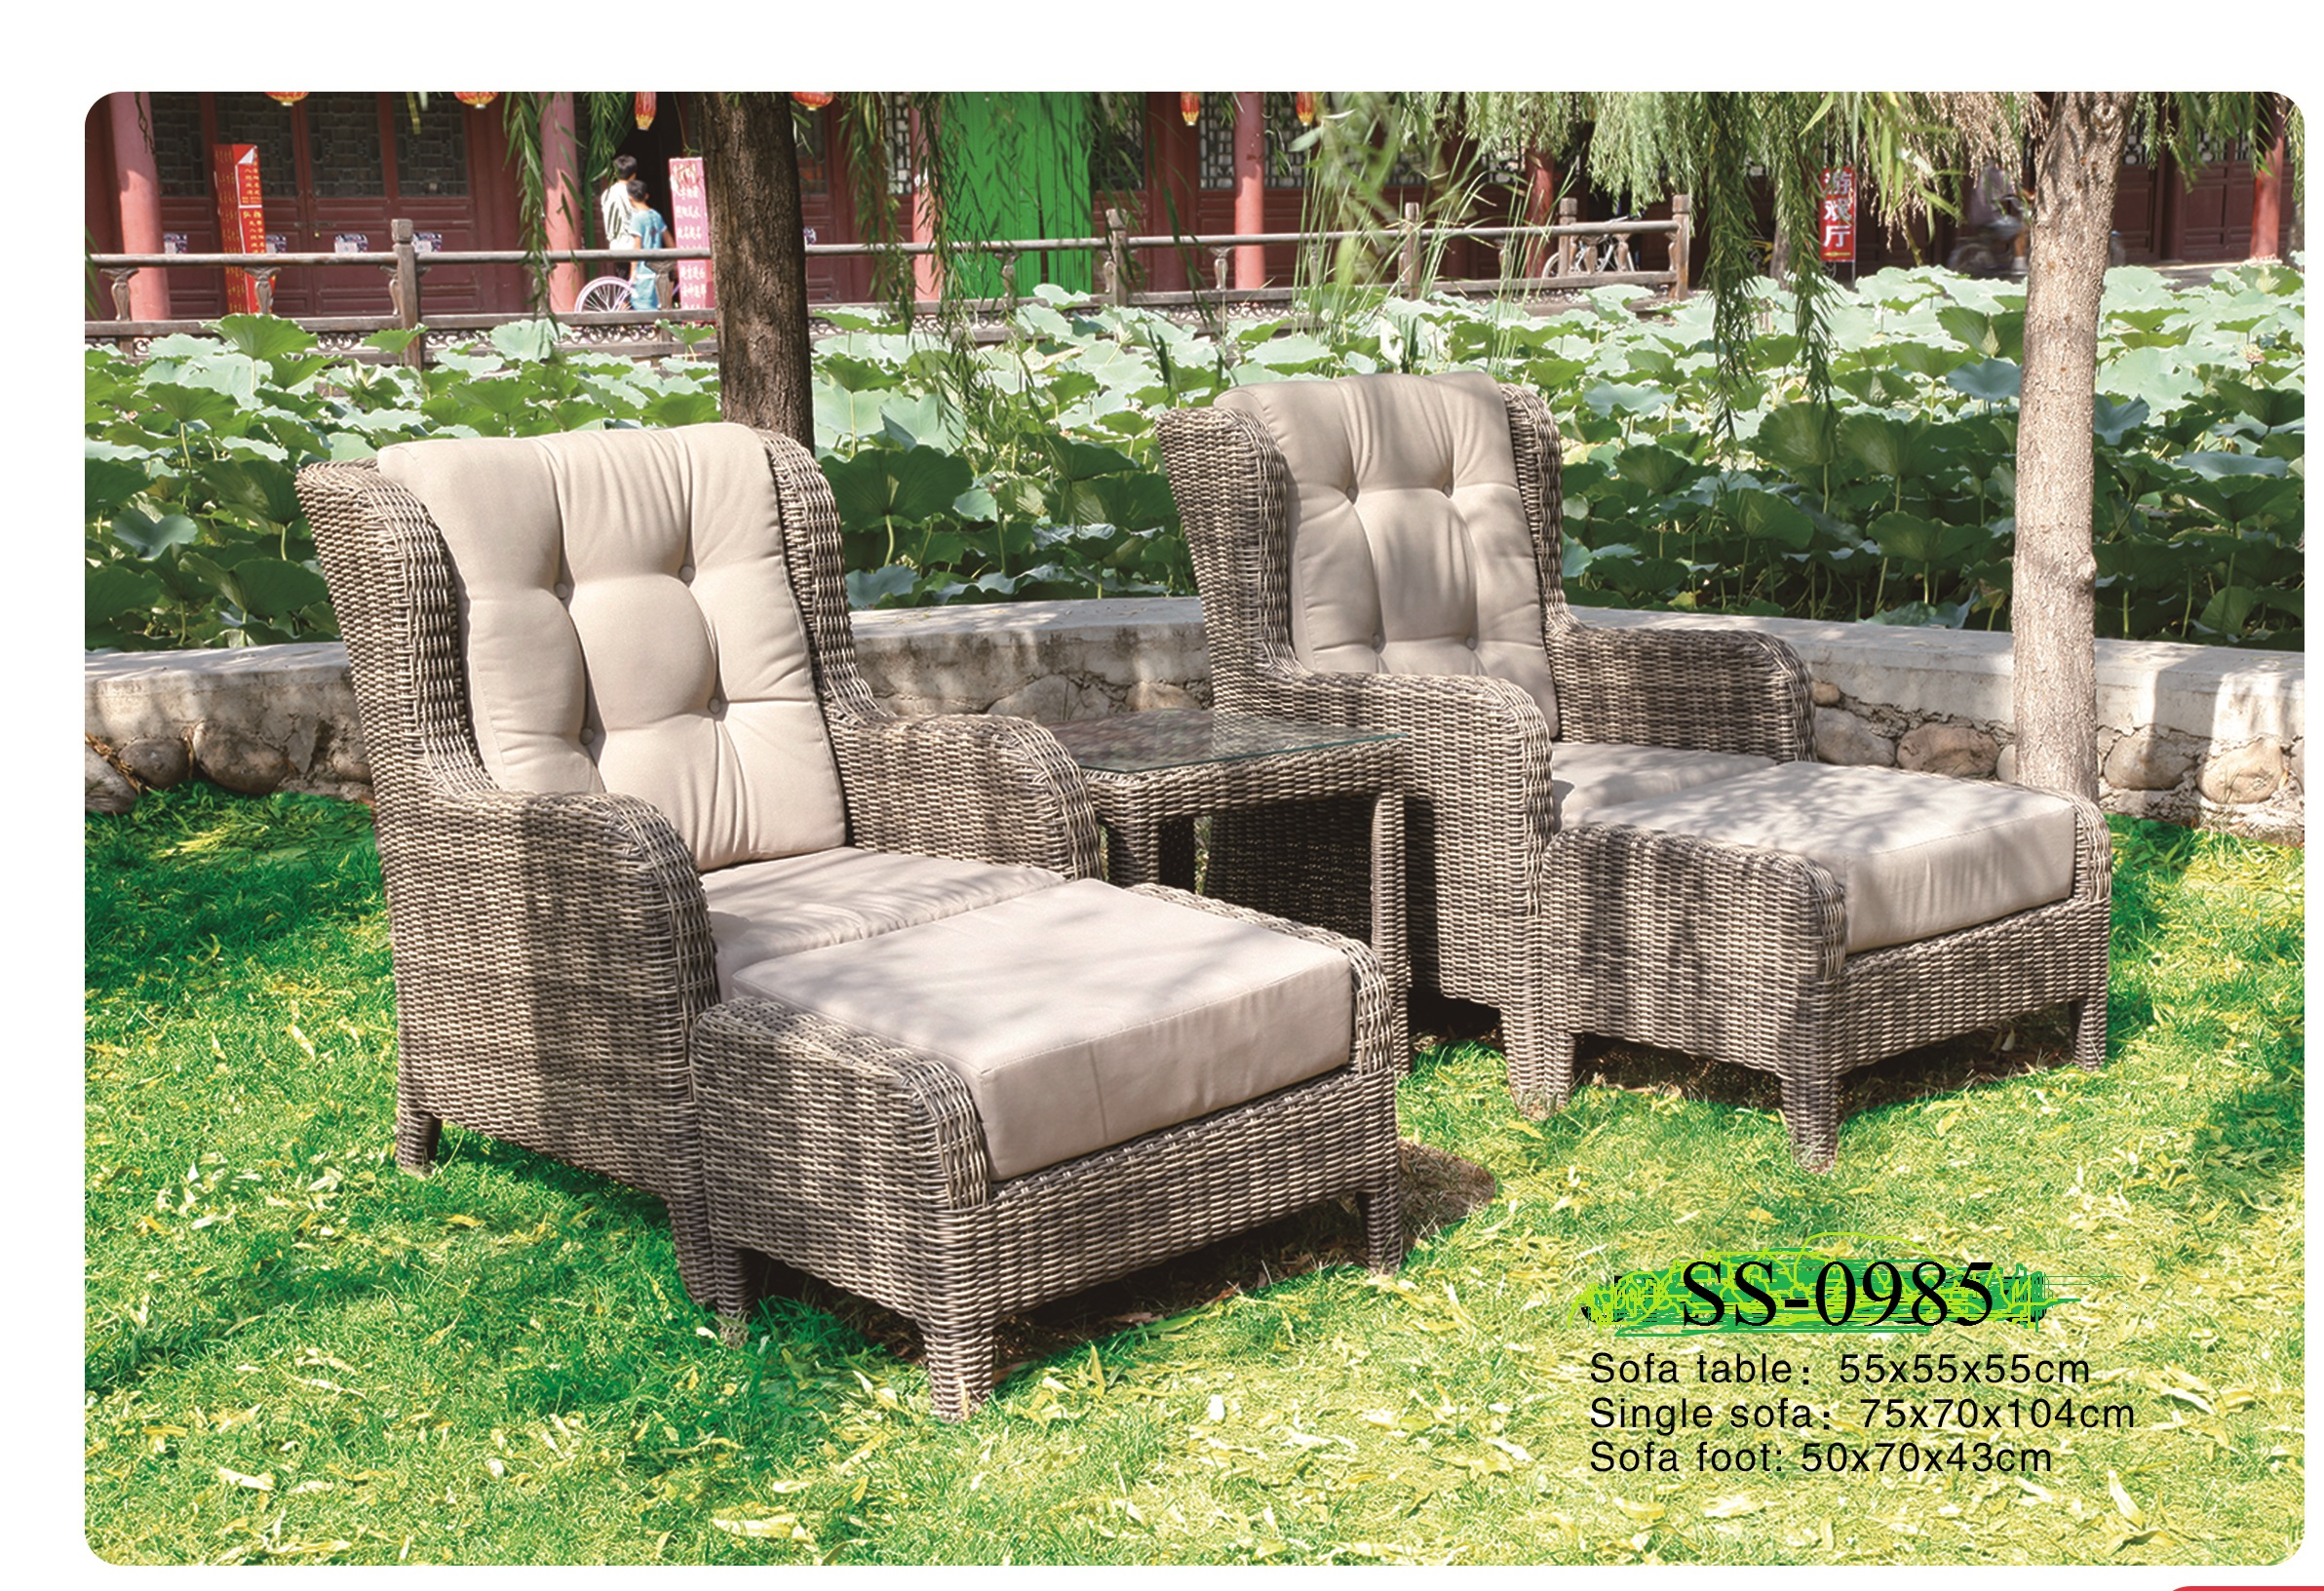 Lounge Deck Chair With Foot Stool SS-0985